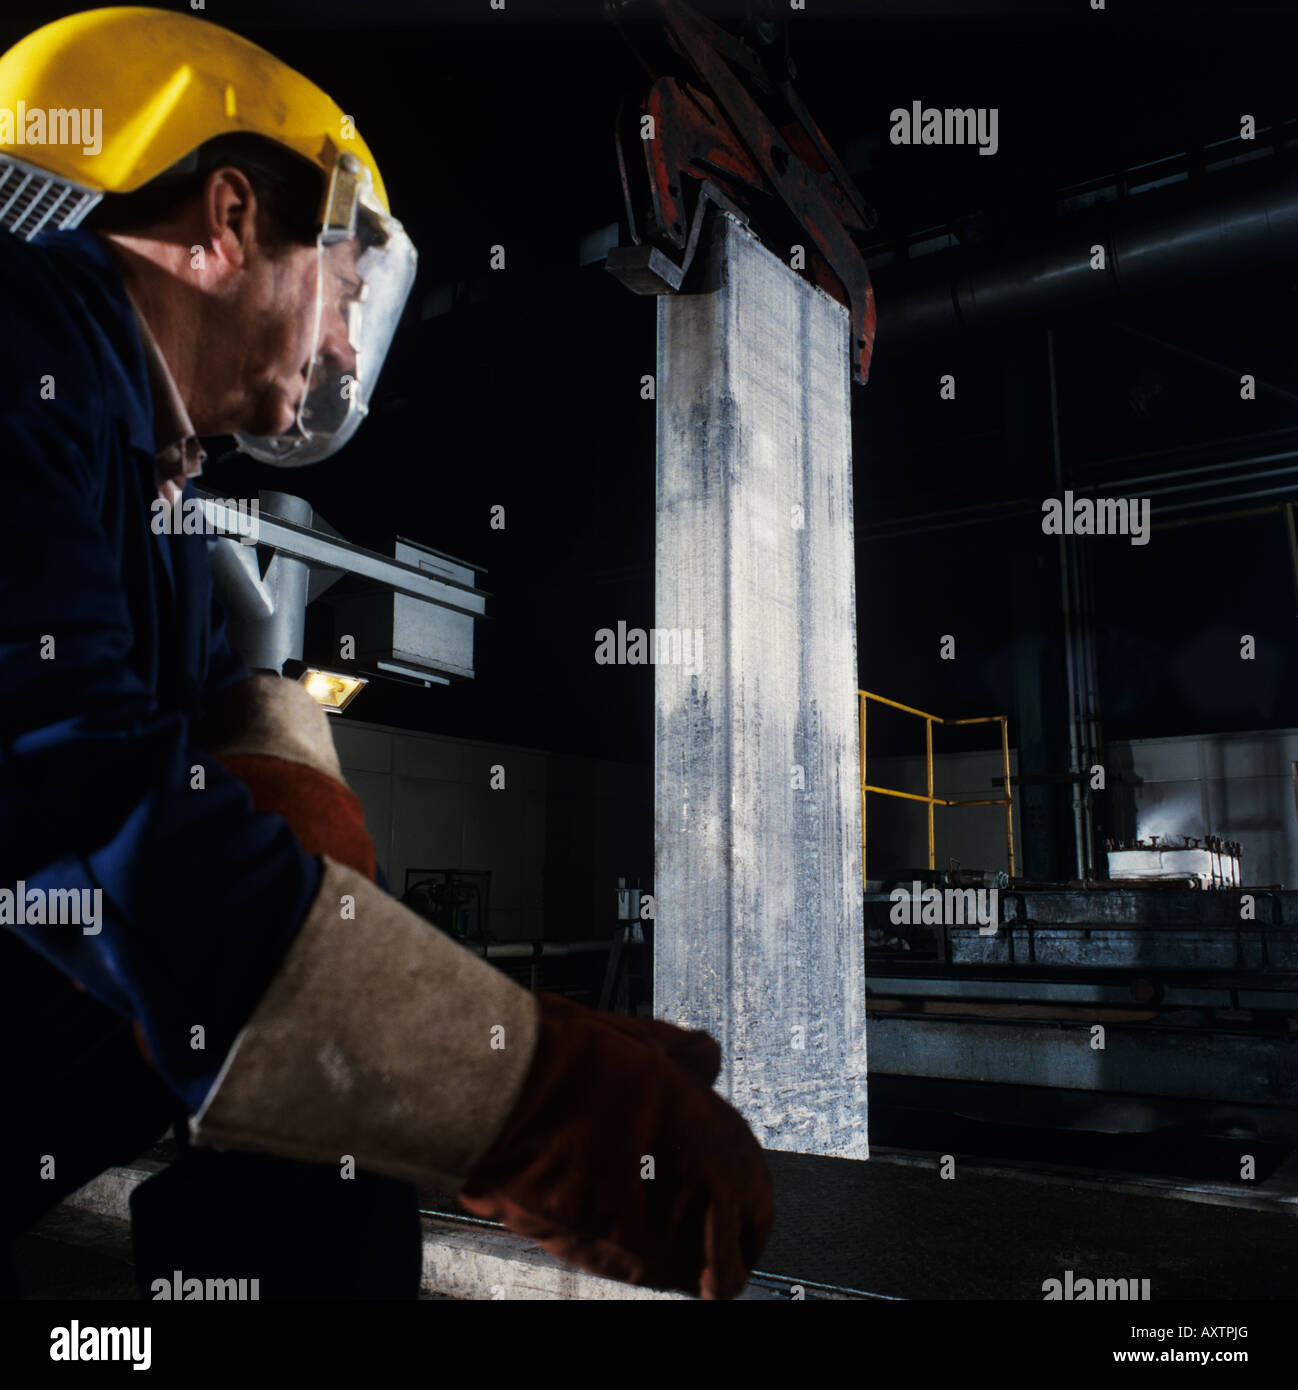 Aluminium Lithium billet being removed from furnace before further processing for use in aerospace industries - Stock Image